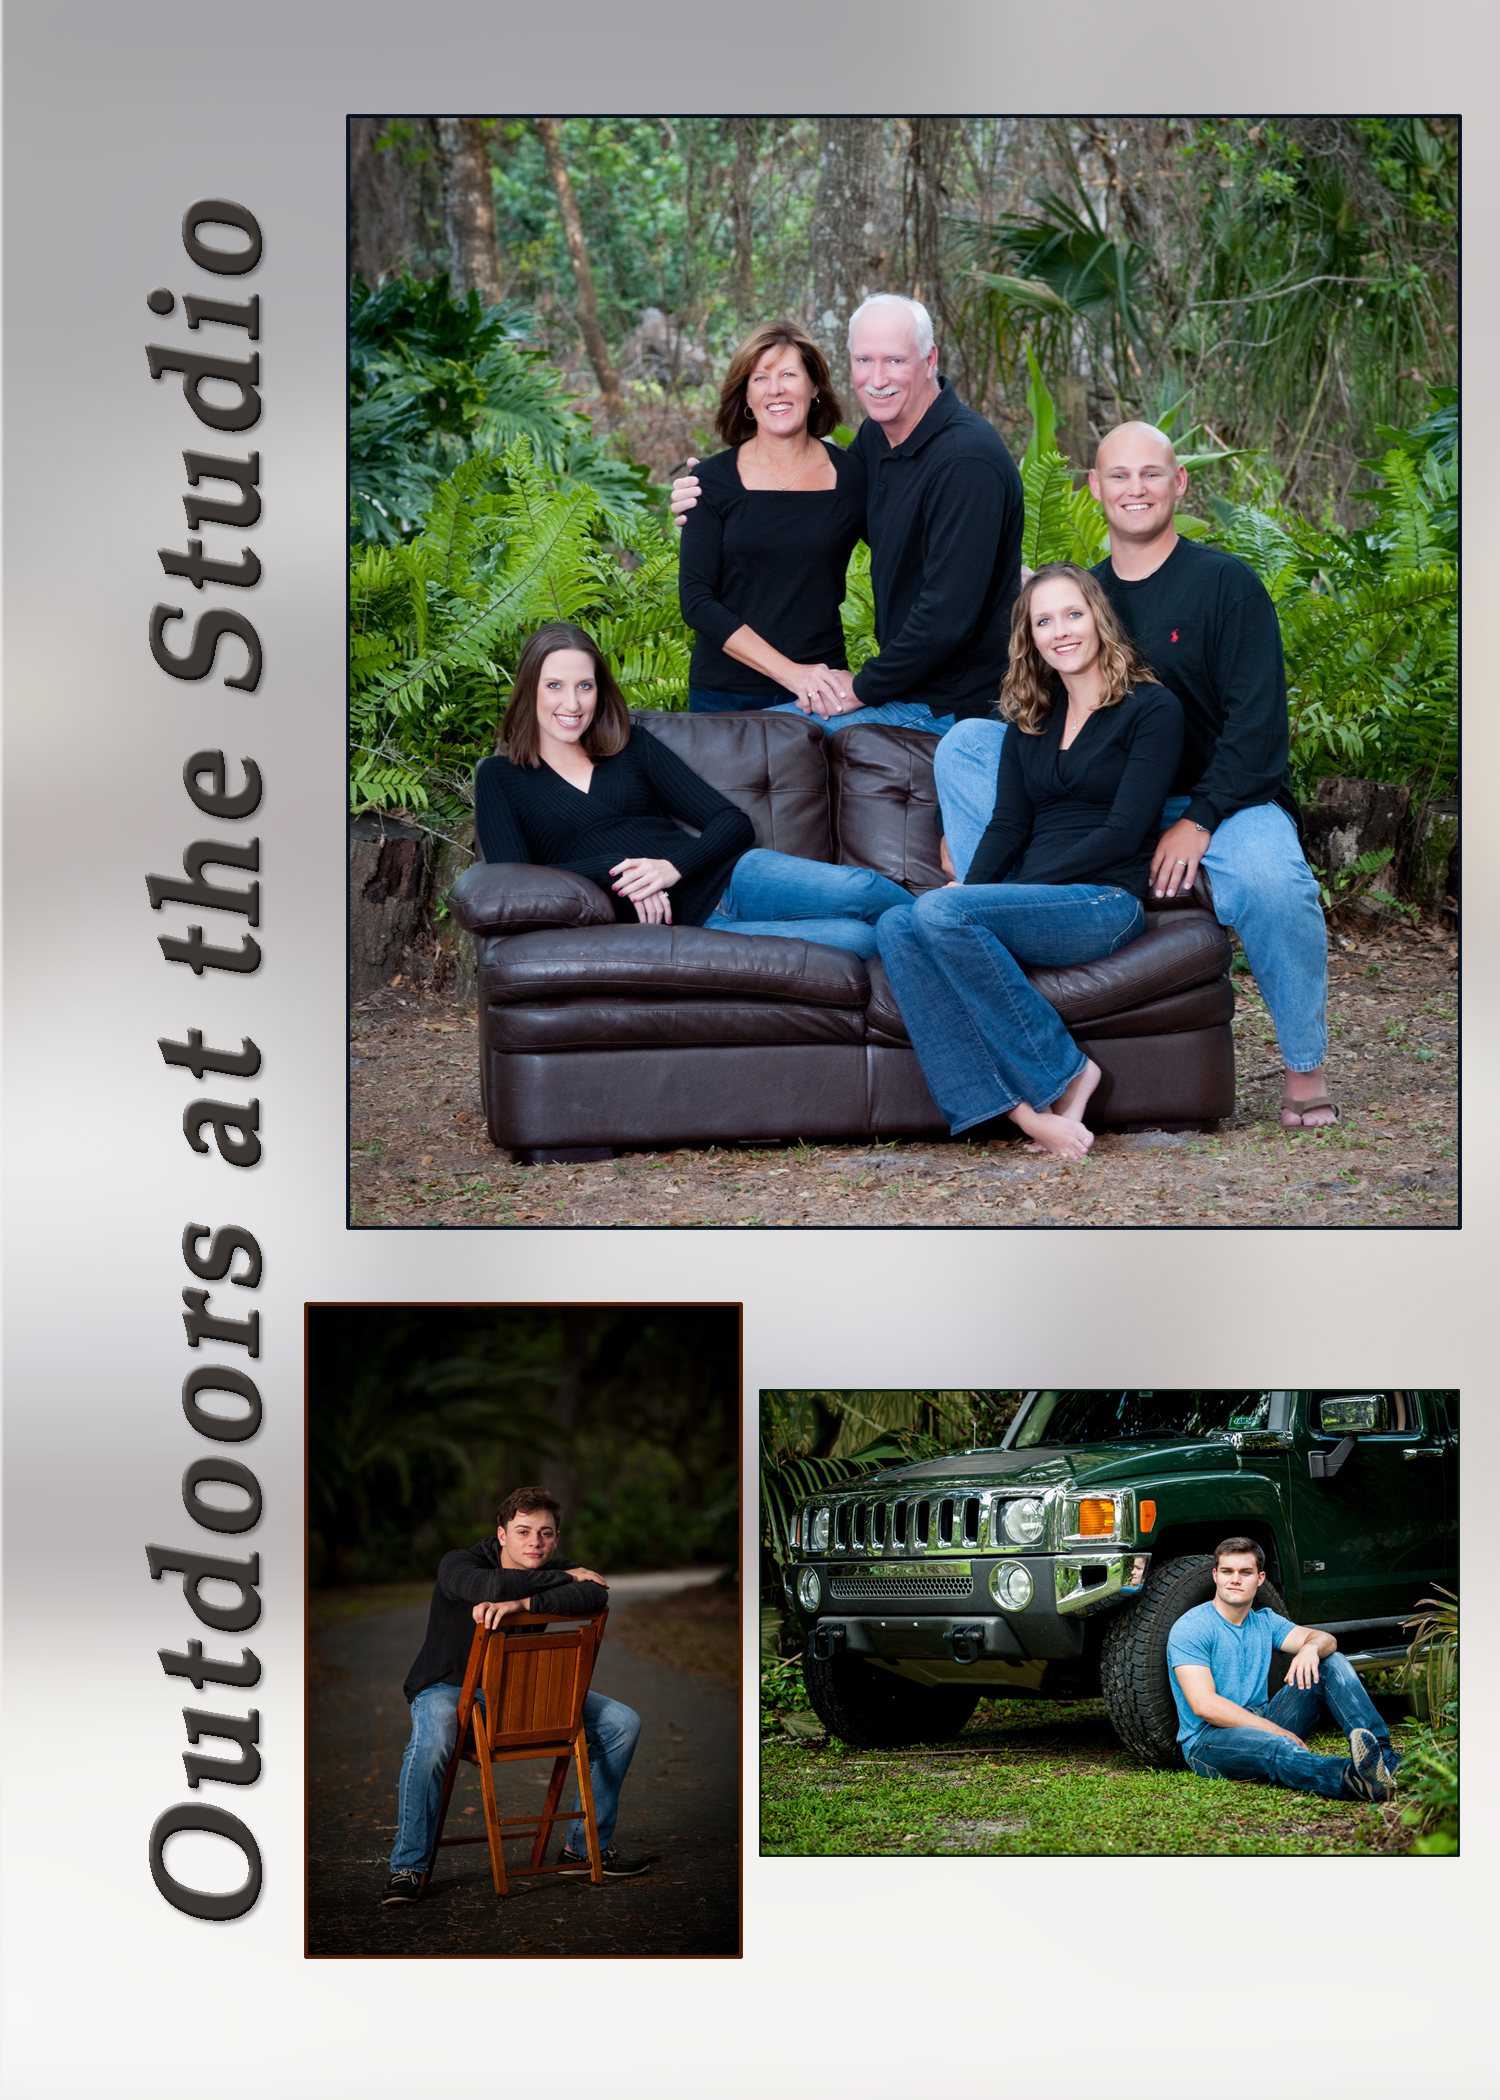 Family Portraits outdoors at our studio